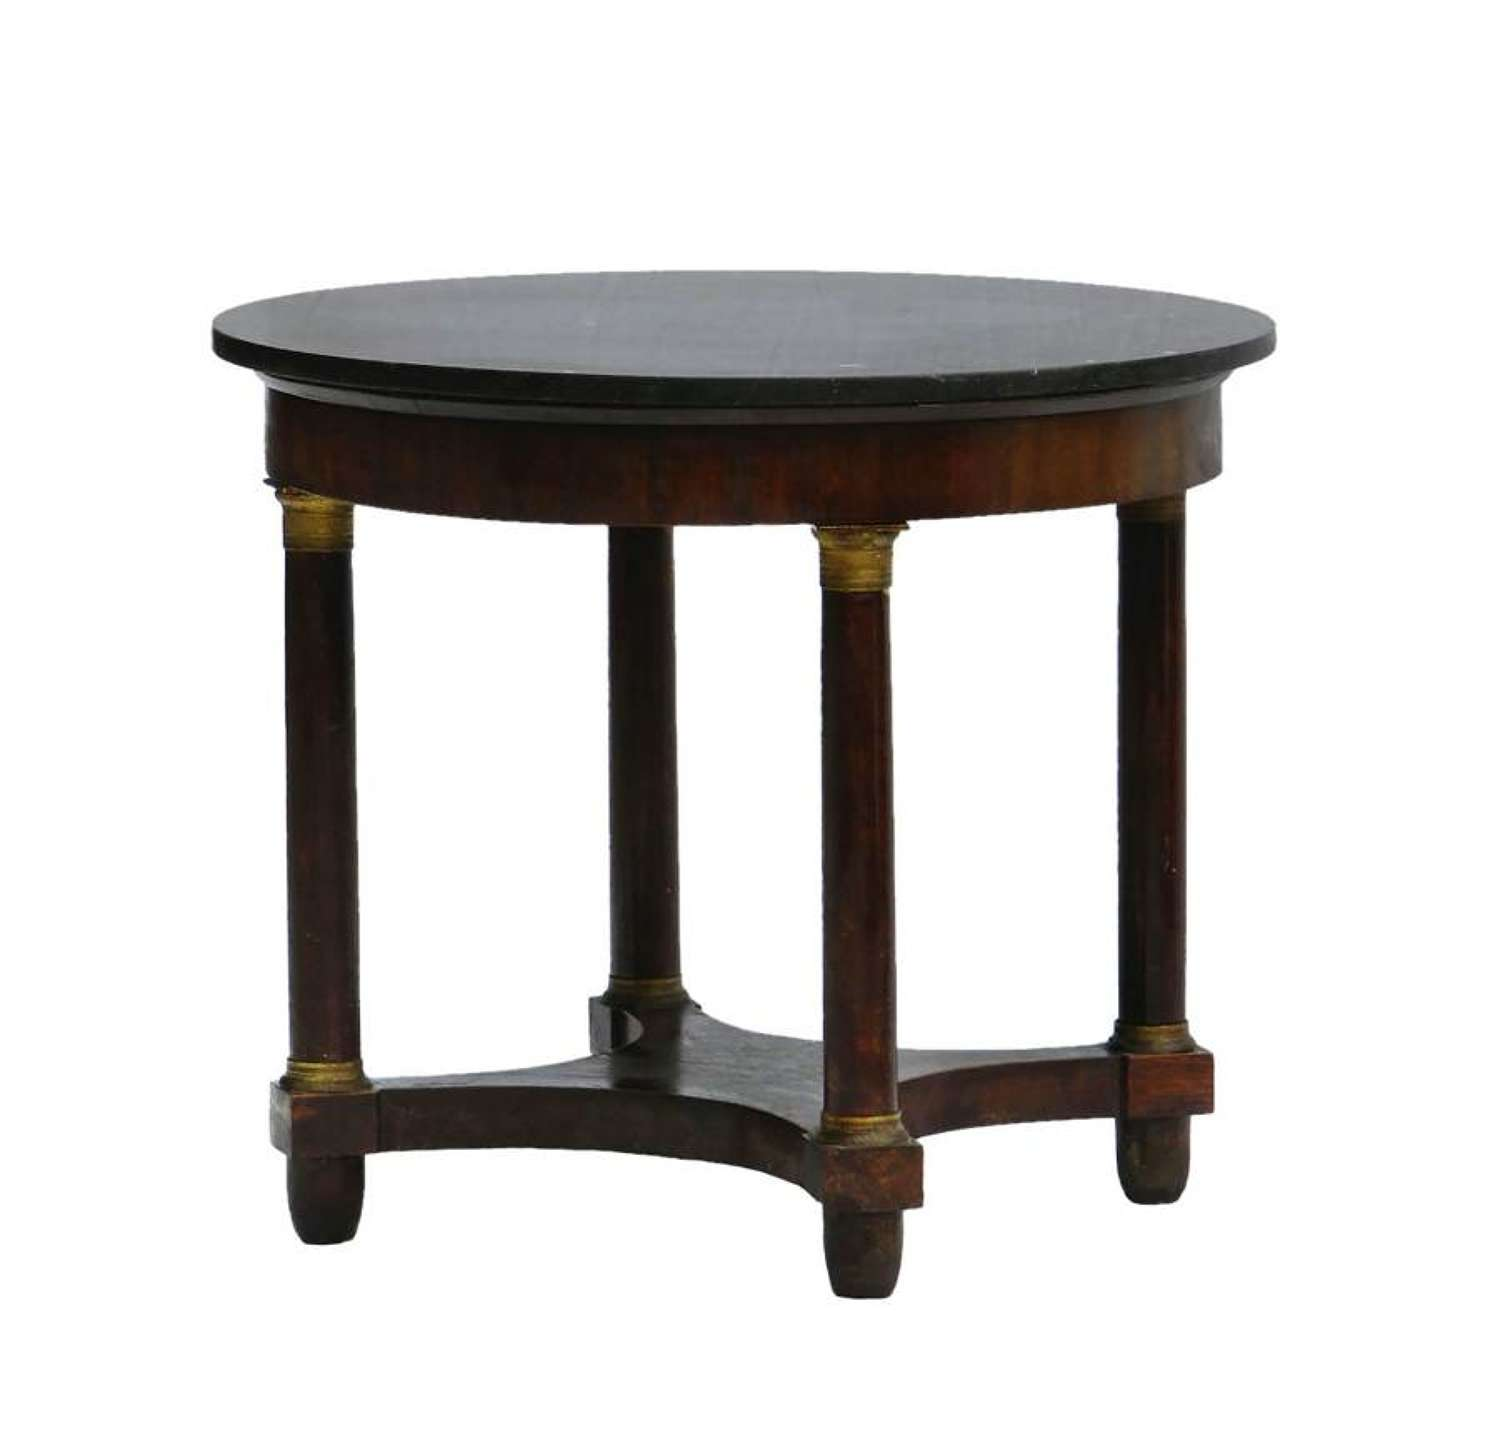 French Gueridon Table 19th Century Second Empire Ormolu Bronze Marble Top